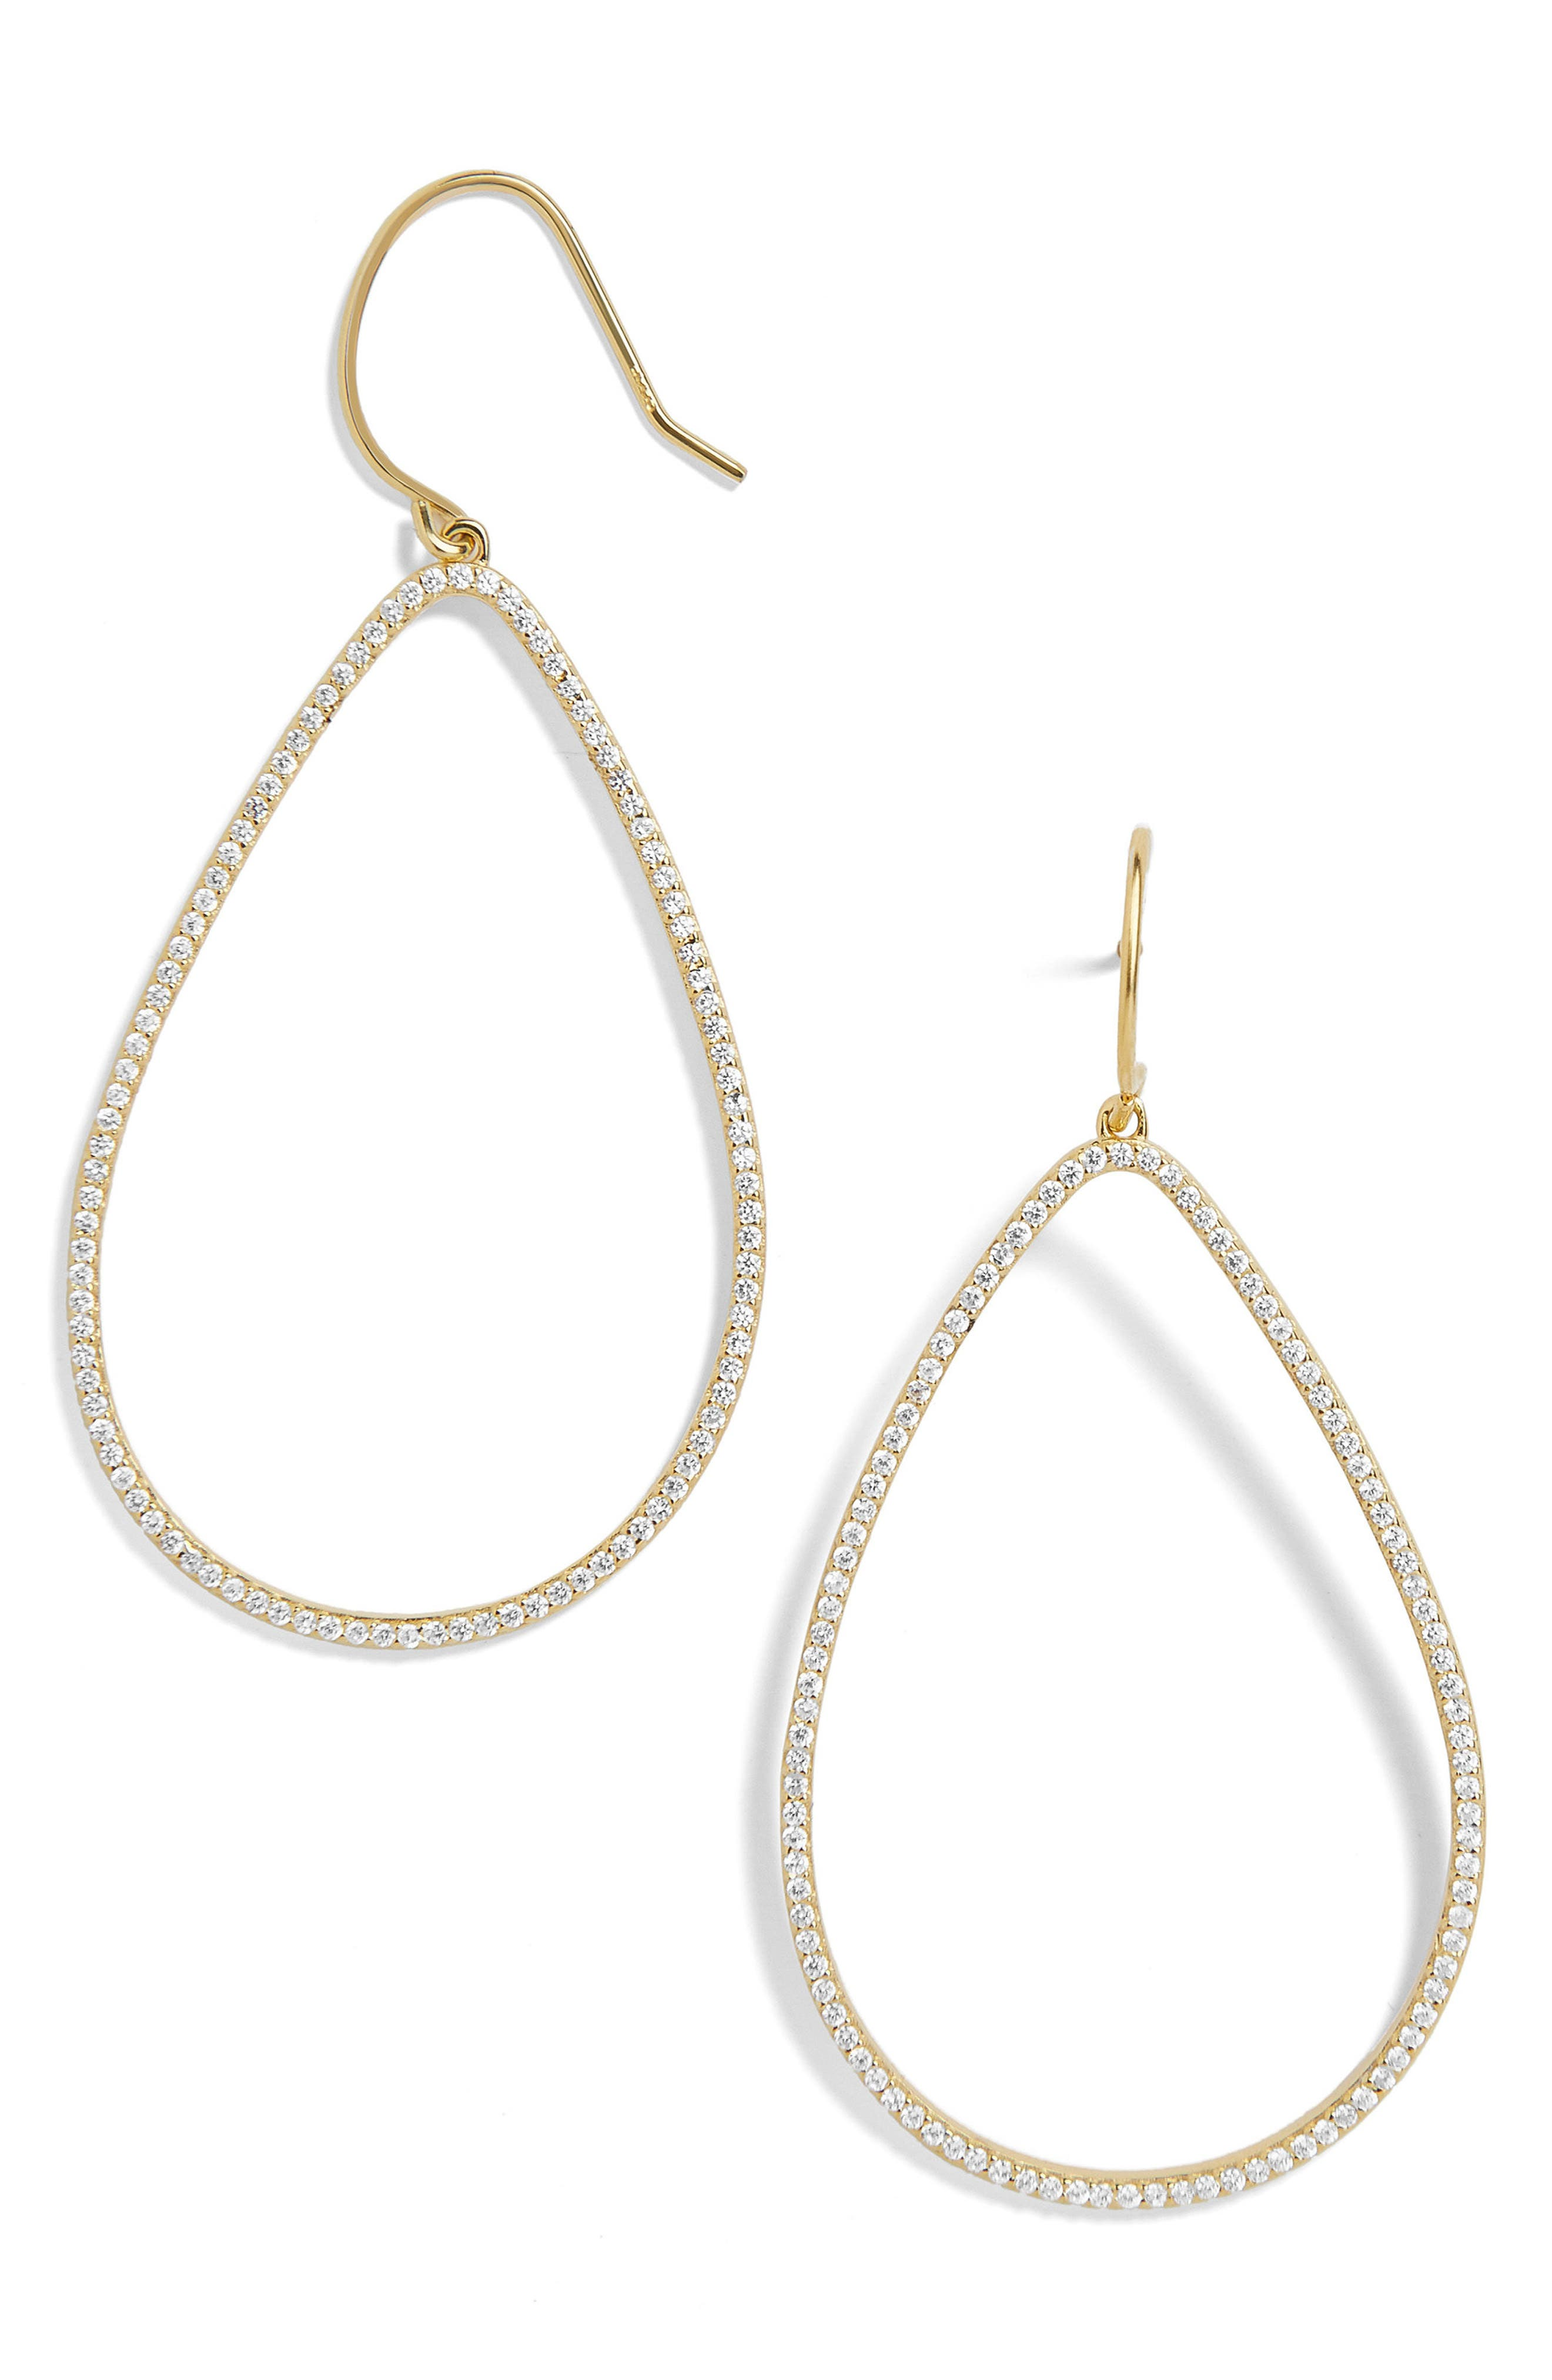 Everyday Fine Fishhook Crystal Teardrop Earrings,                             Main thumbnail 1, color,                             Gold